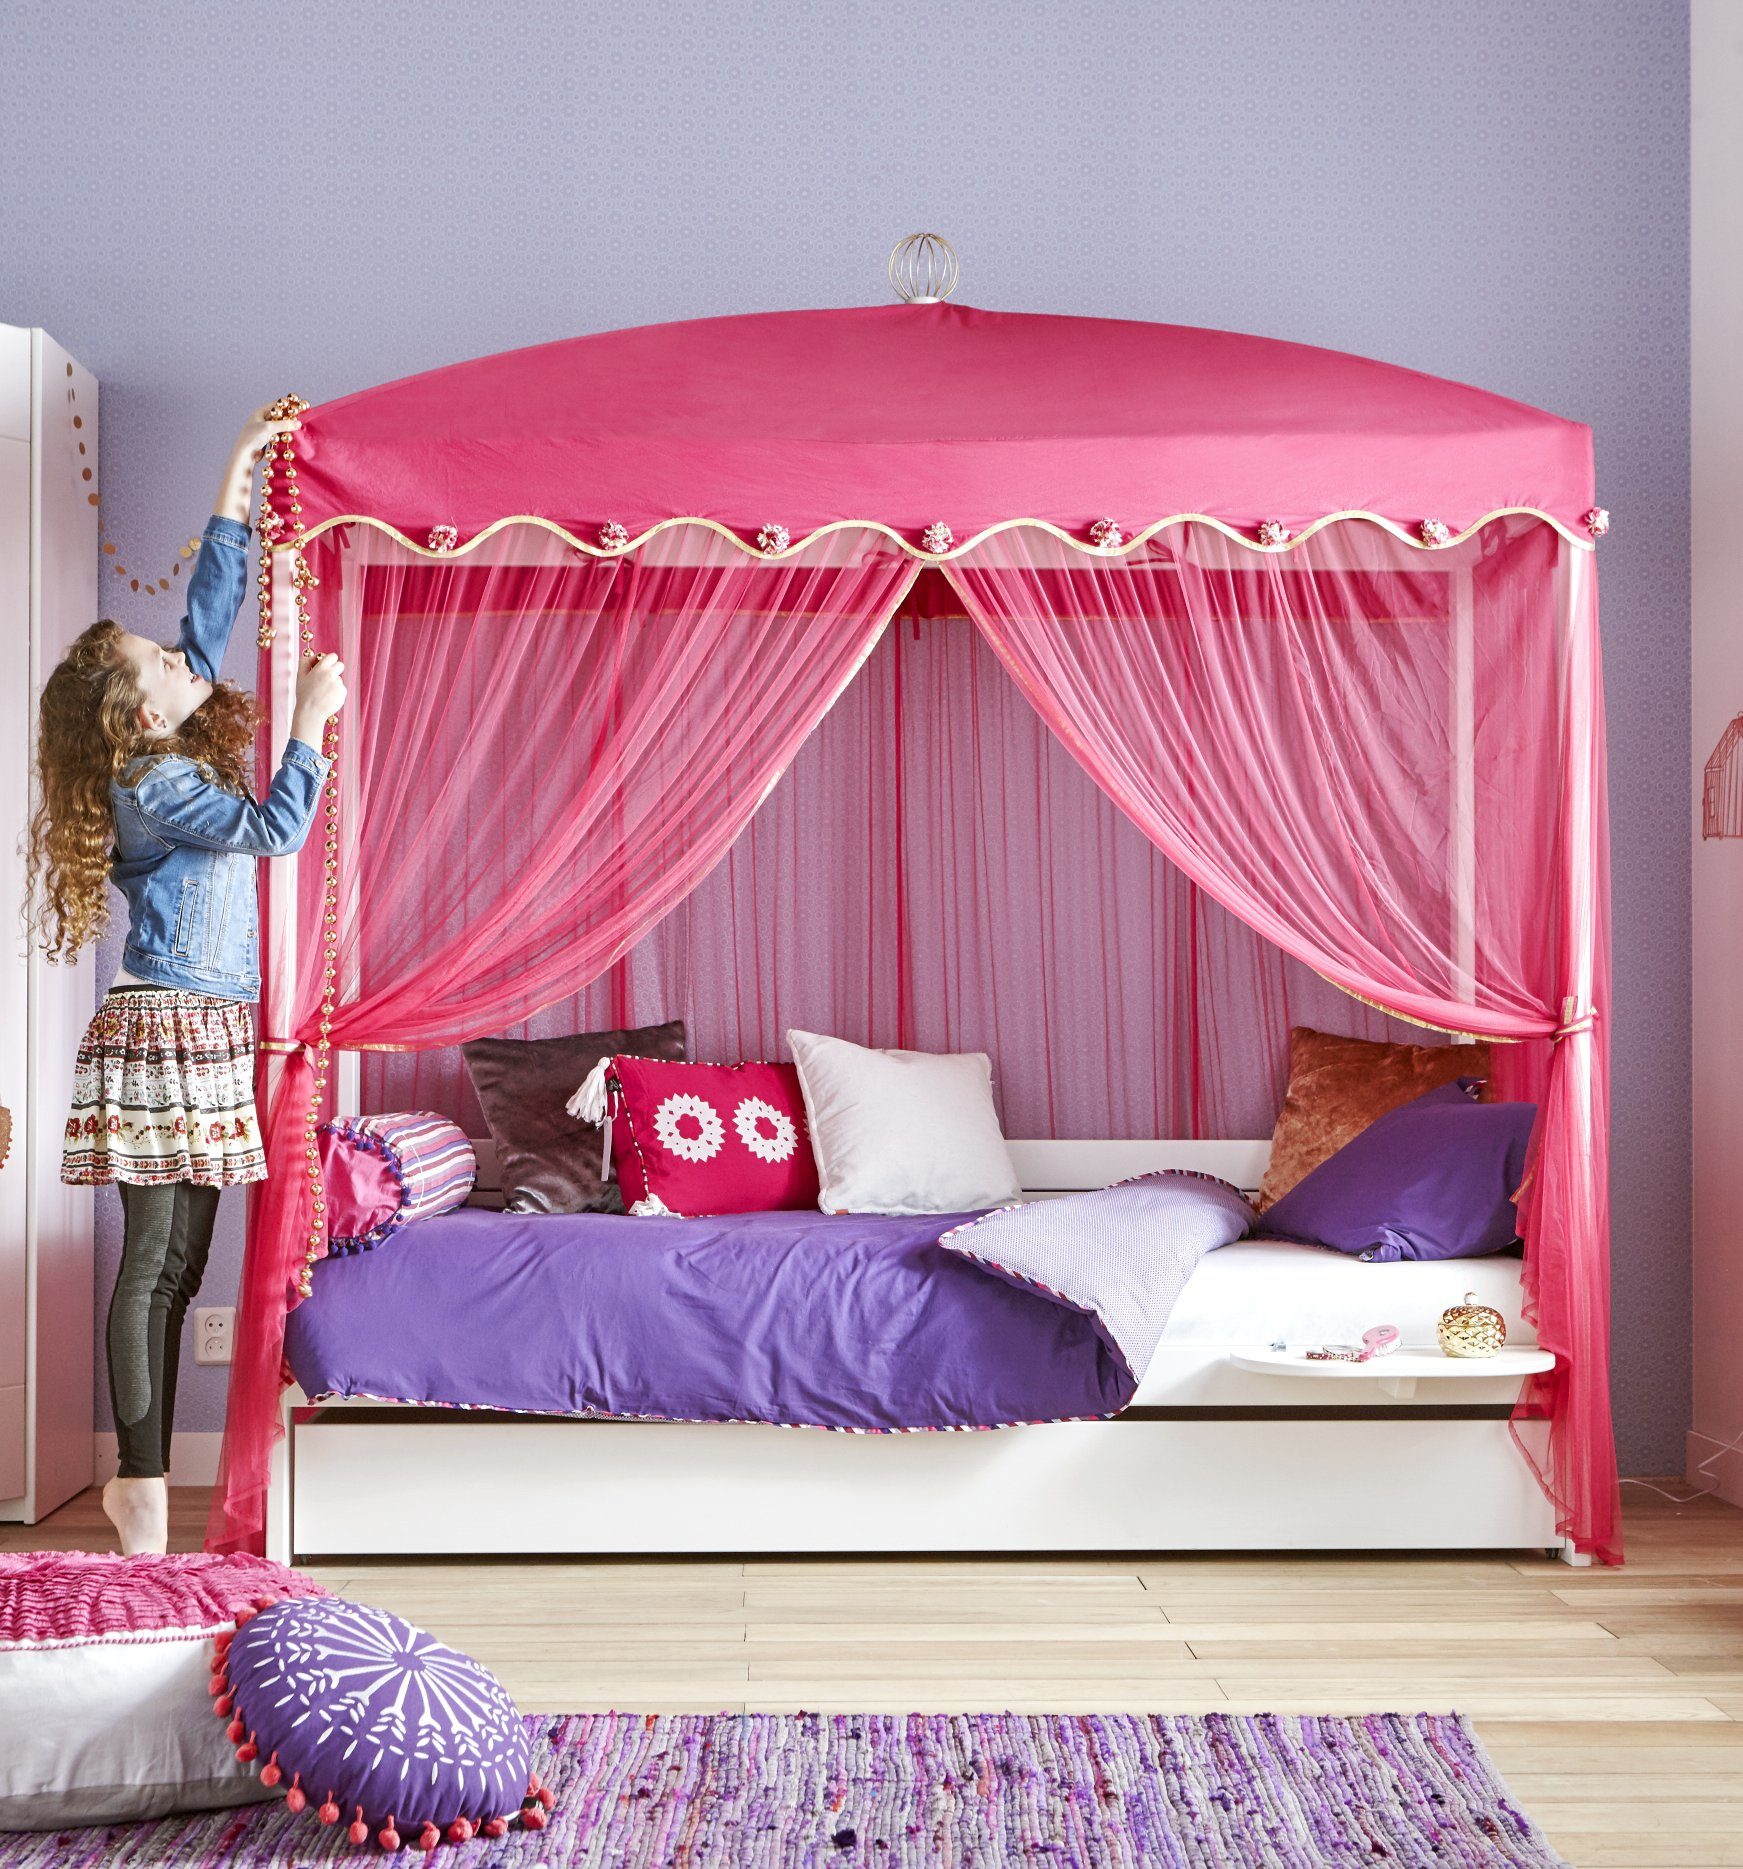 four poster bed with 1001 nights canopy for kids in s a